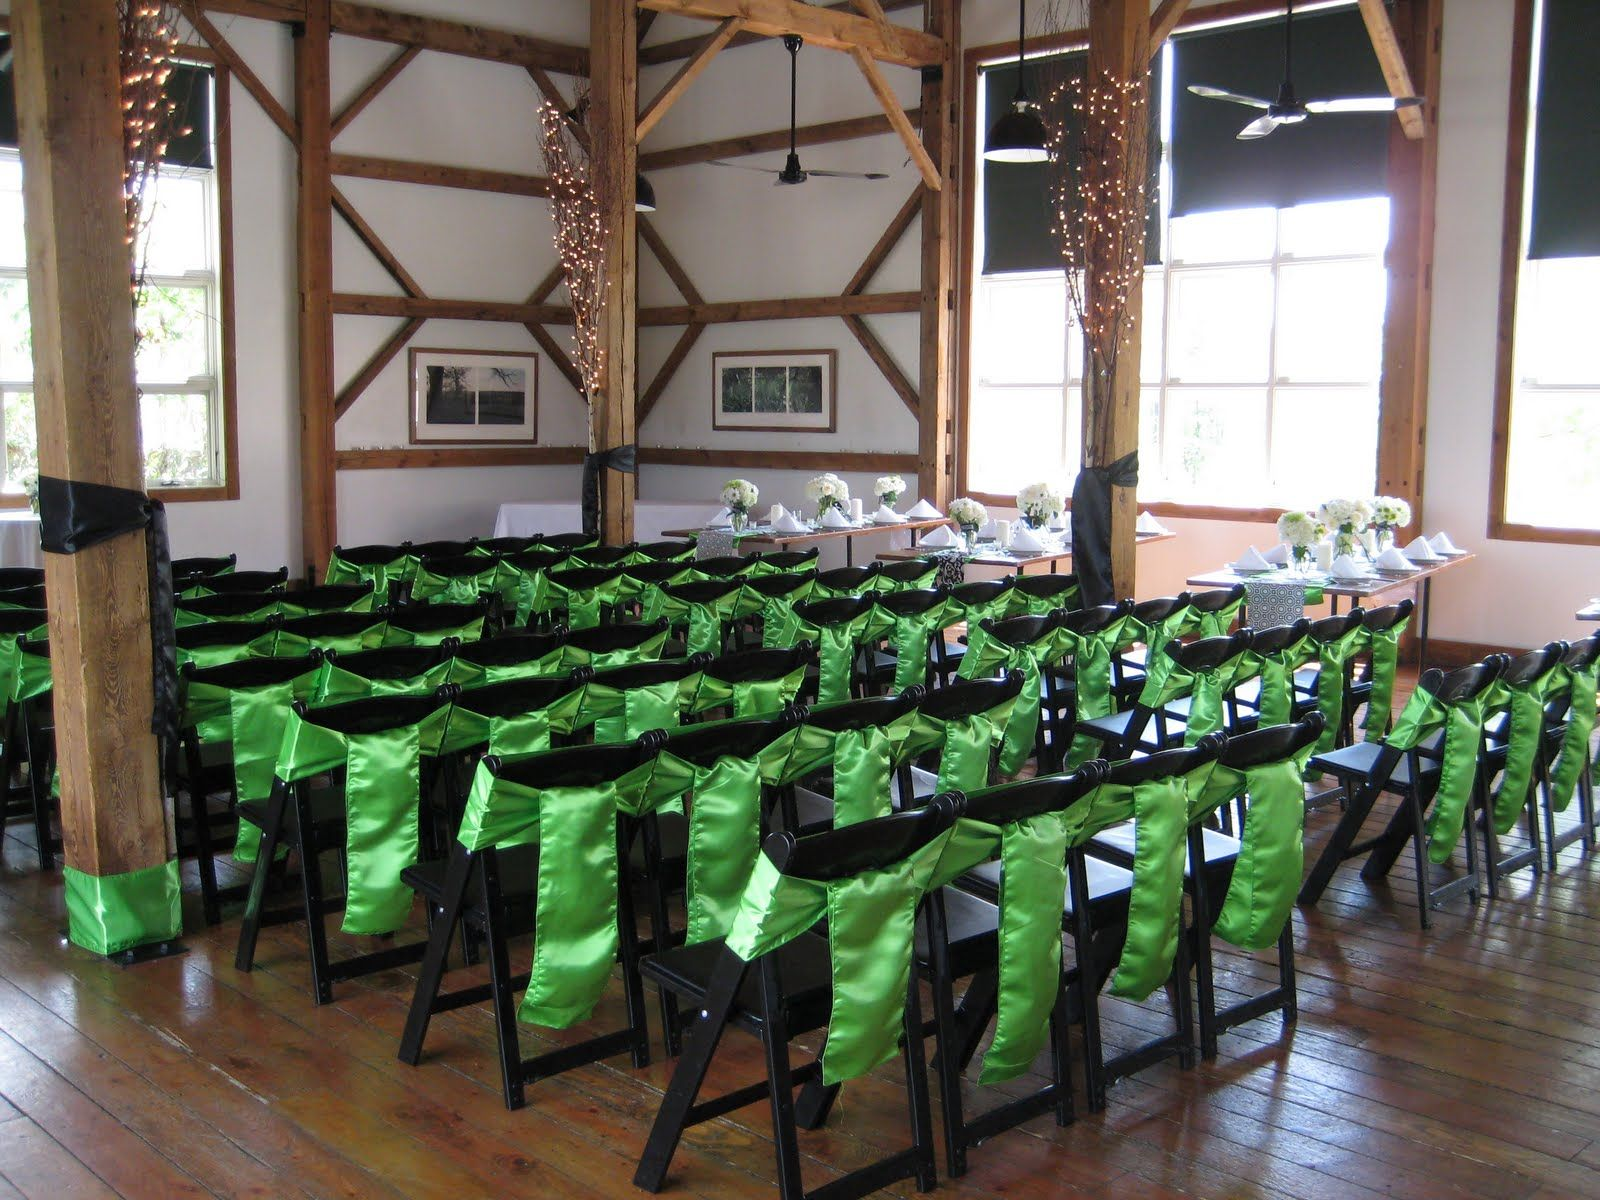 Cute idea for decorating metal folding chairs wedding for Decorating chairs for wedding reception